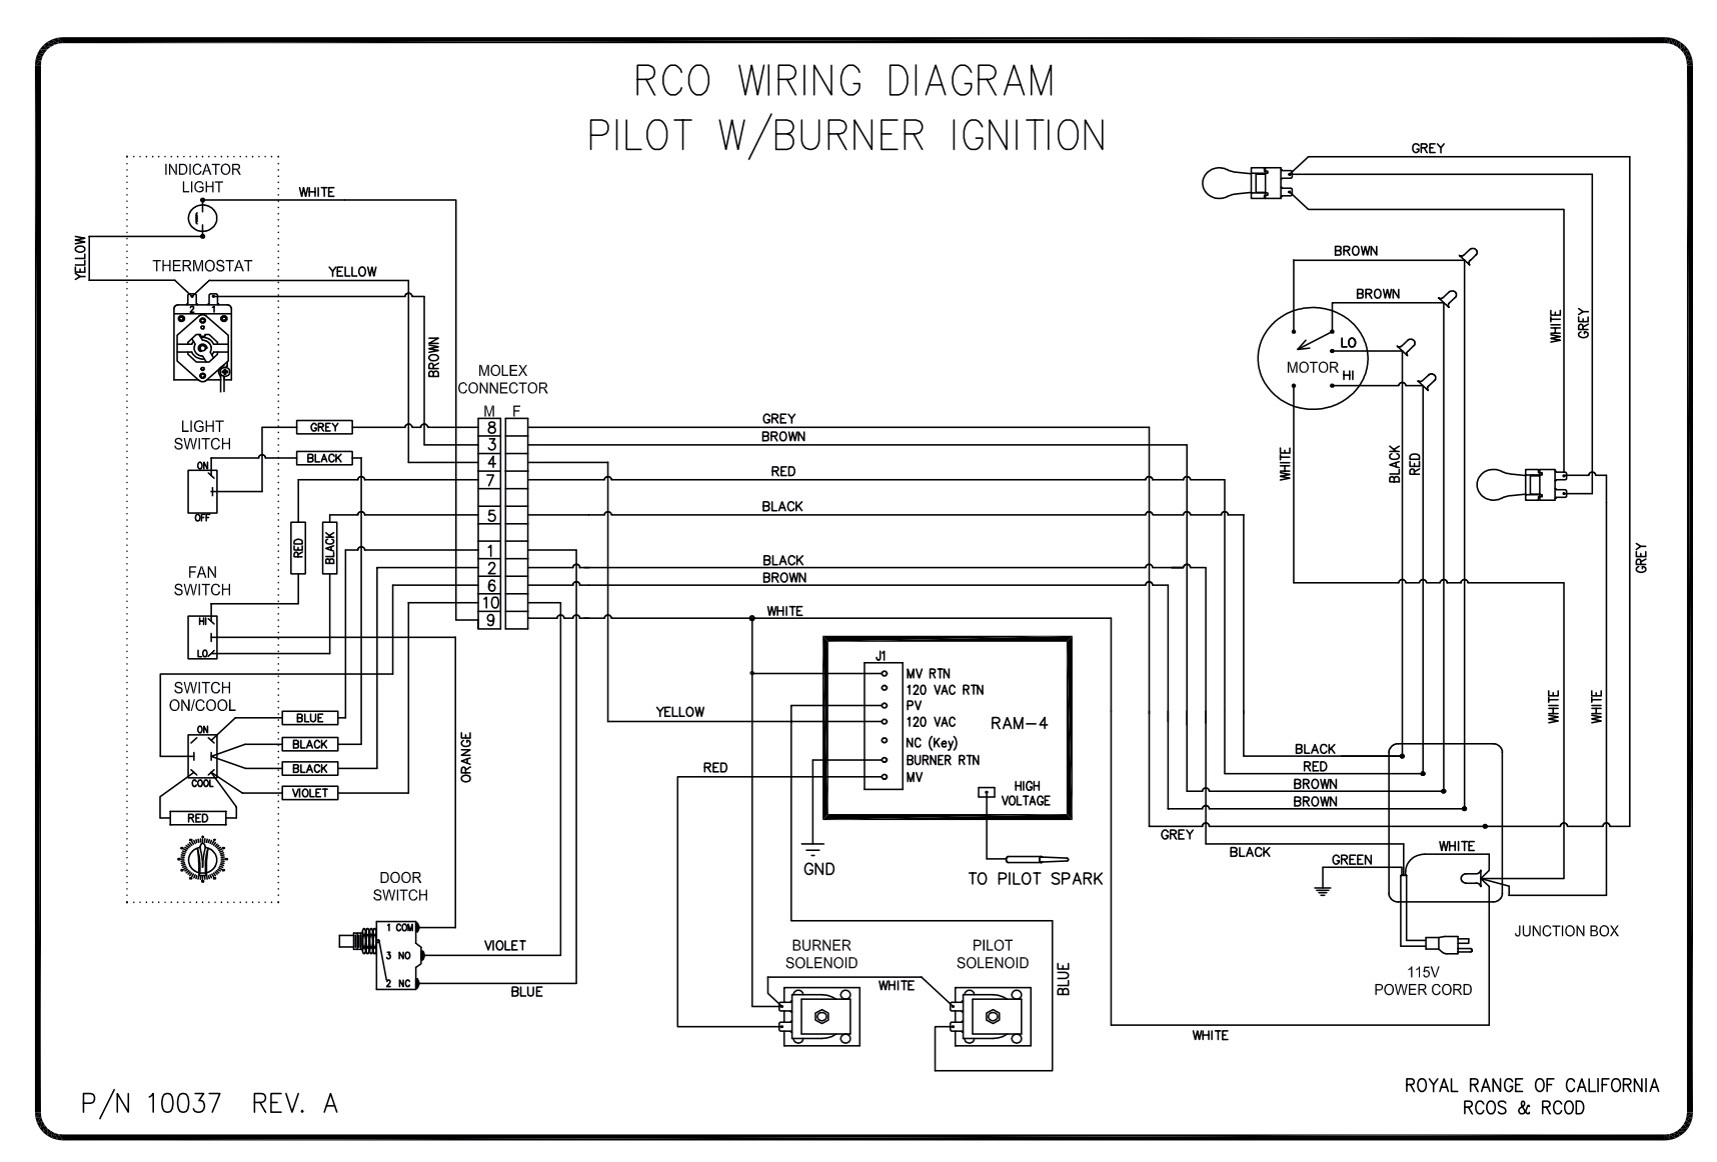 G24 Wiring Diagram - Wiring Diagram M3 on